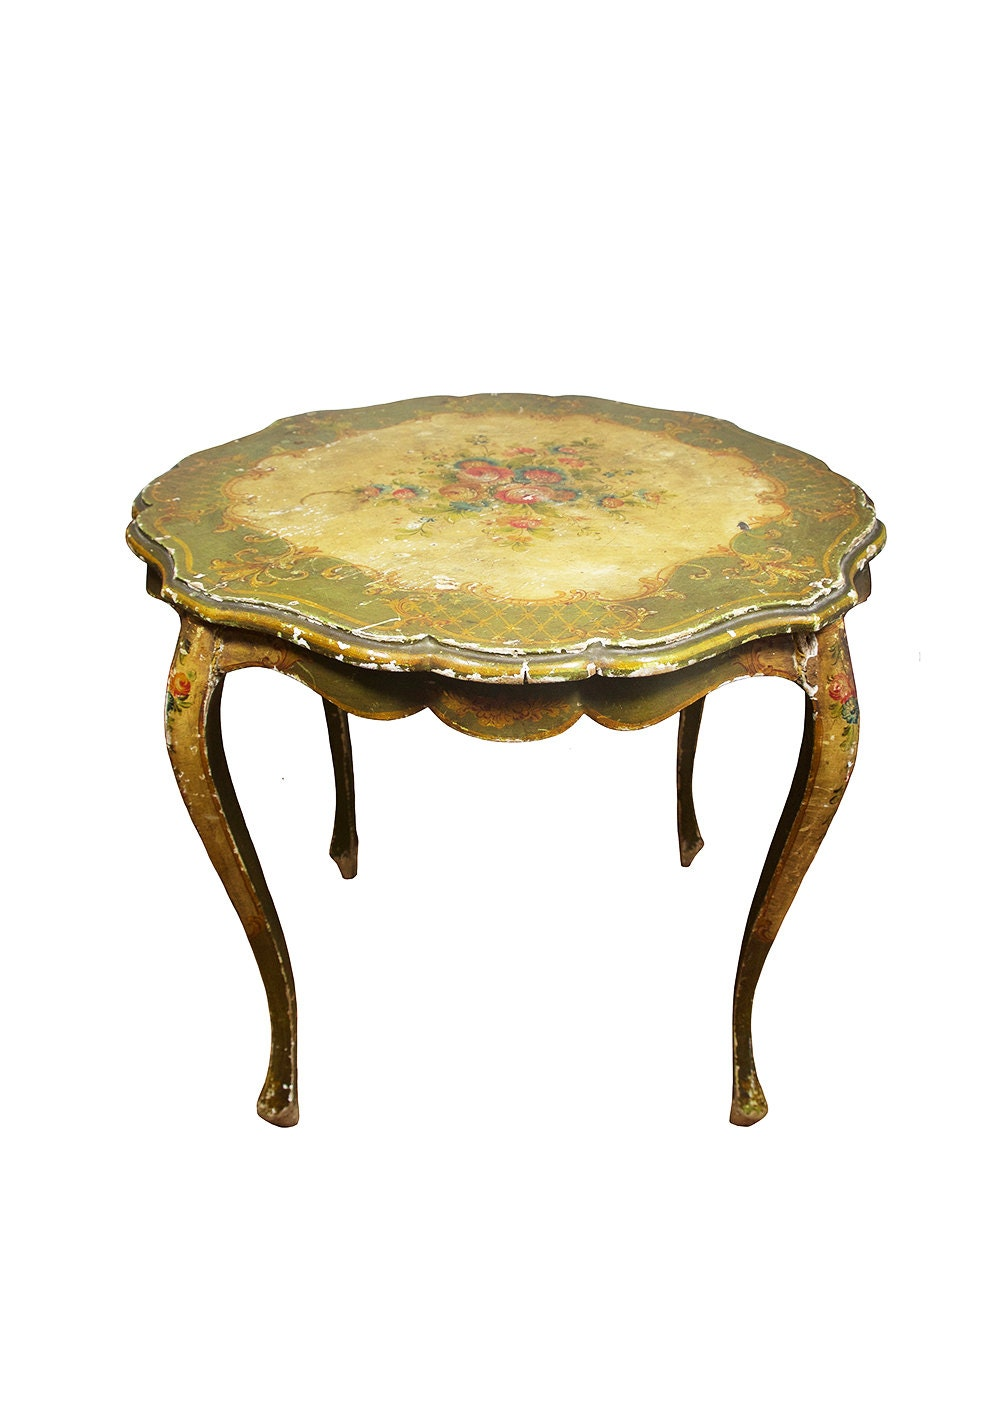 Antique Table Italian Table Antique Furniture Venetian Decor